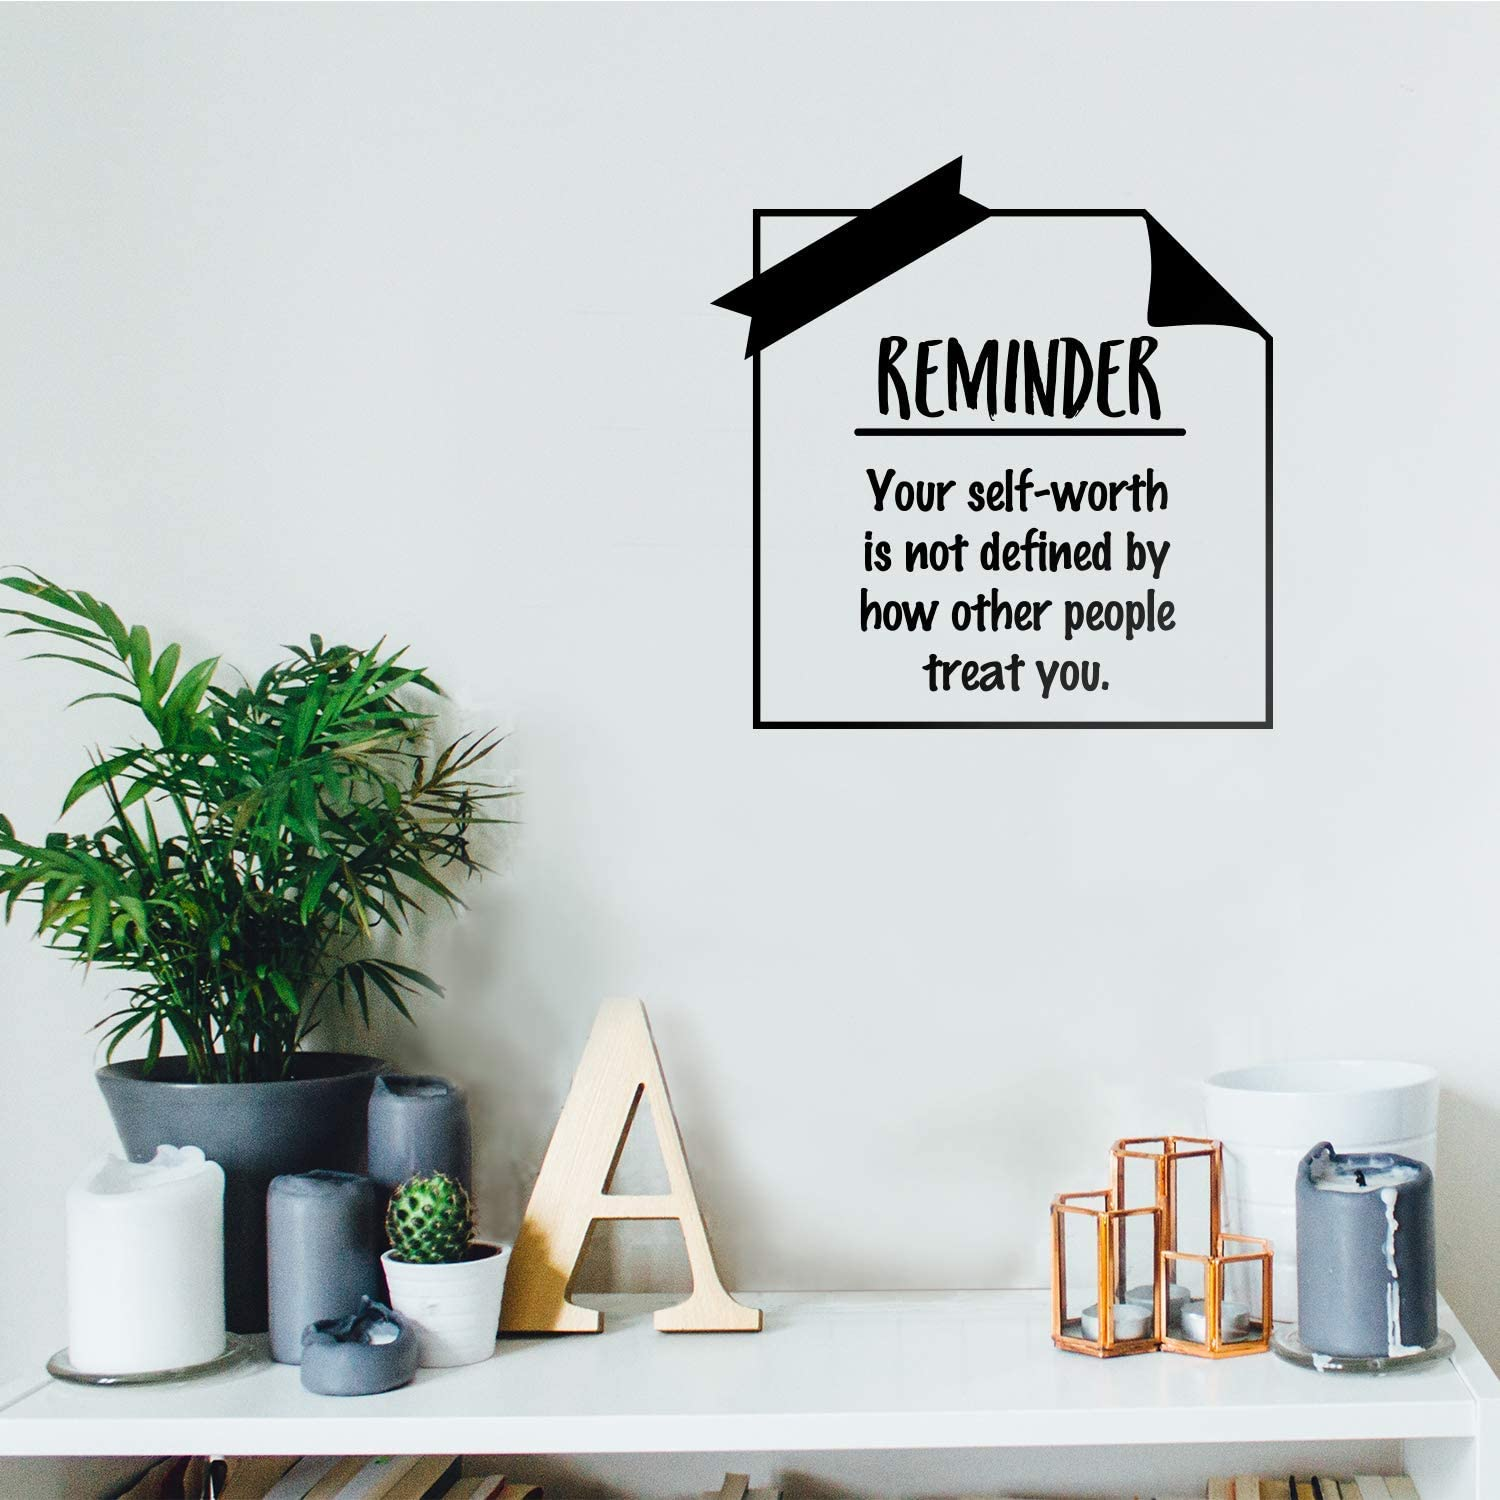 """Vinyl Wall Art Decal - Your Self-Worth is Not Defined by How Other People Treat You - 17"""" x 17"""" - Modern Inspirational Quote for Home Bedroom Living Room Office School Decoration Sticker (Black)"""